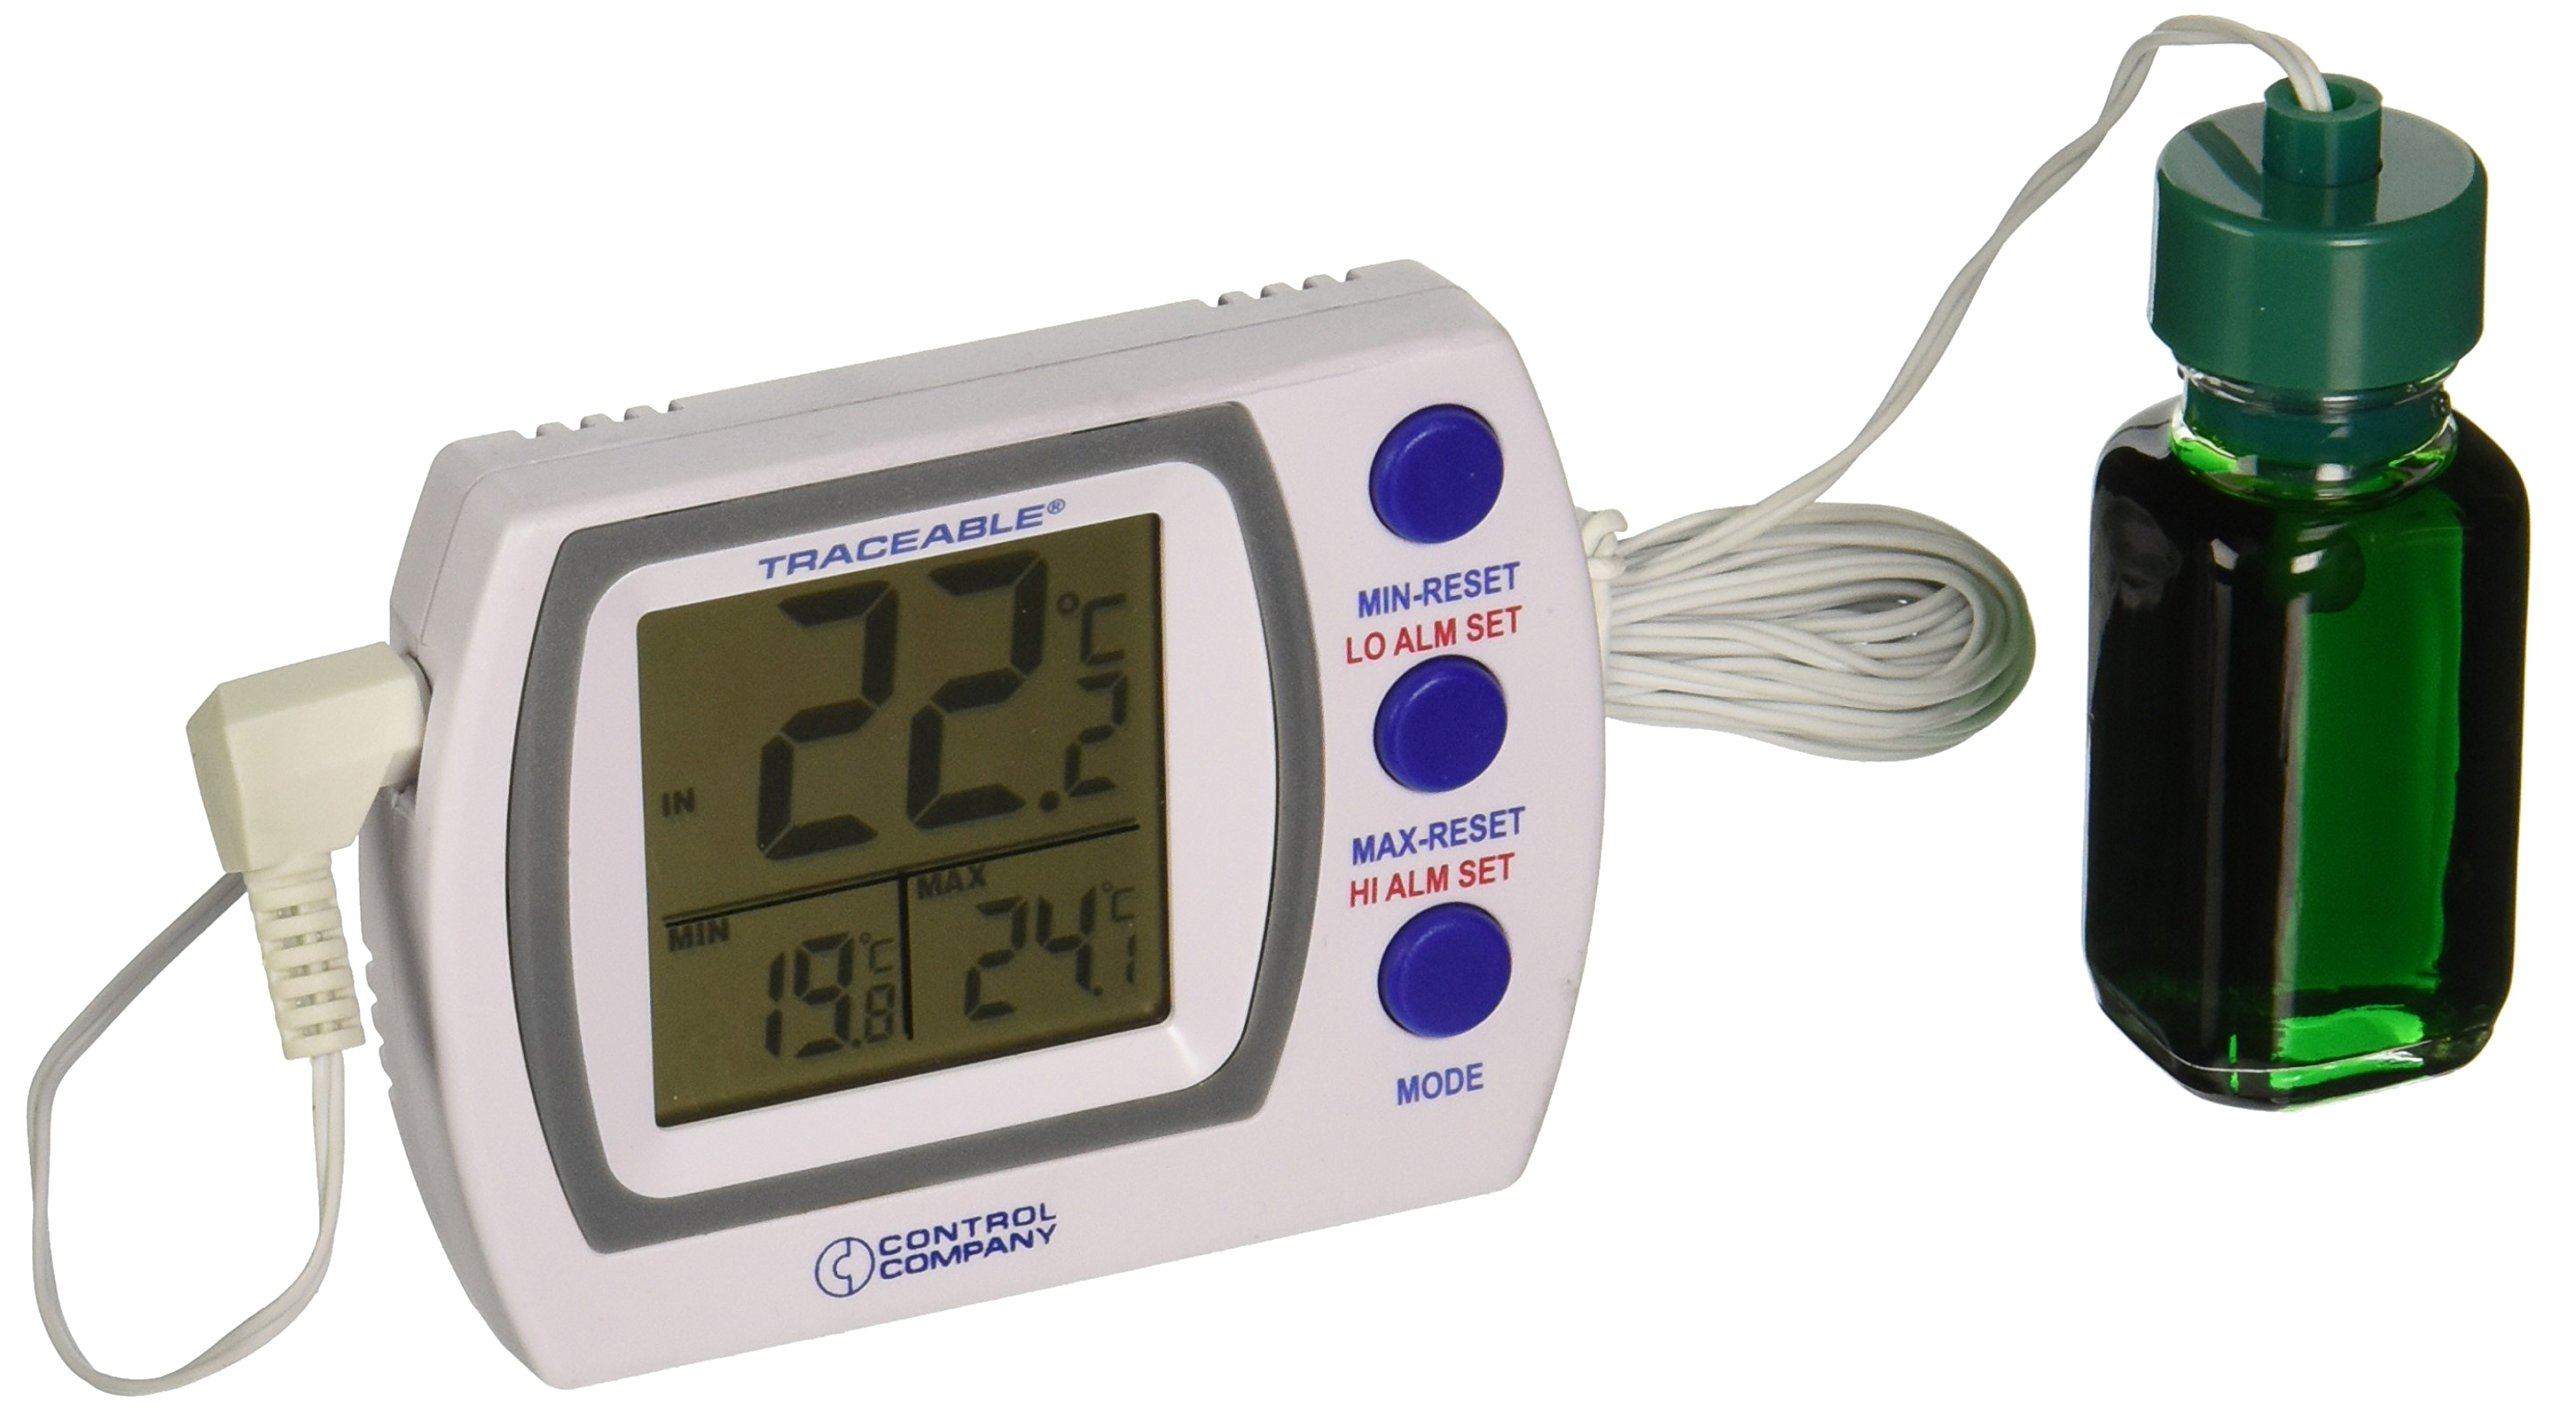 Control Company 4227 Traceable NIST Certified Refrigerator/Freezer Thermometer with Alarm by Graham-Field